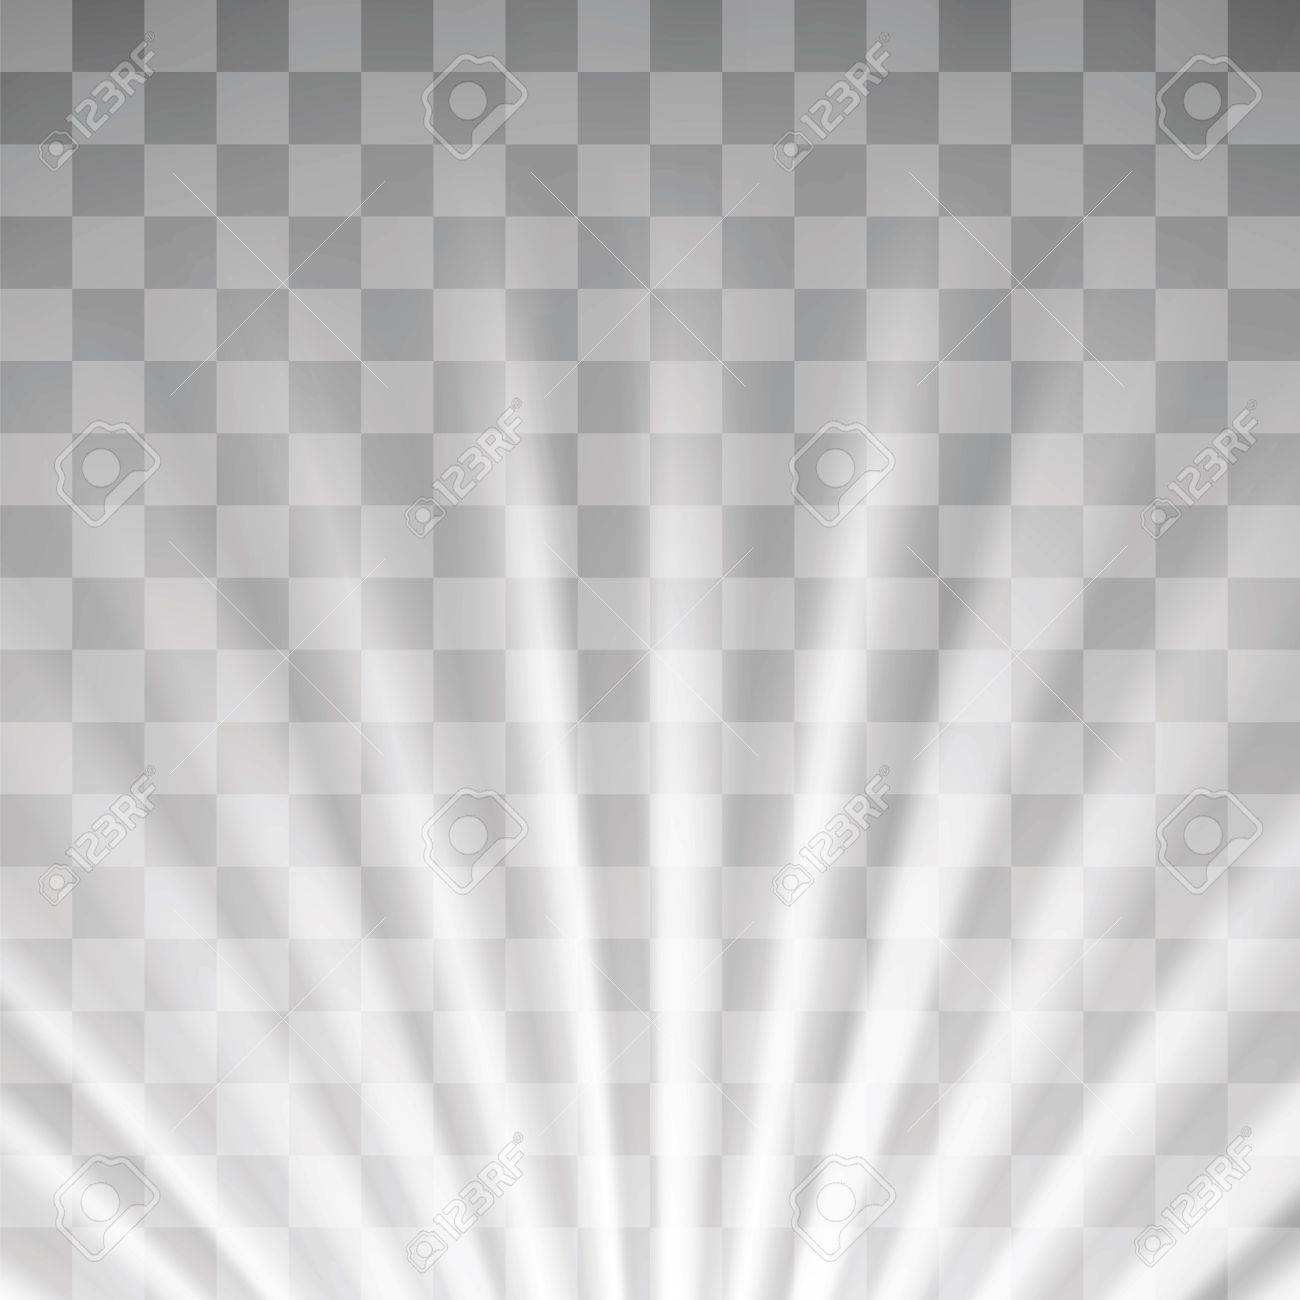 Transparent Light On Gray Checkered Background Blurred Sun Rays Stock Vector